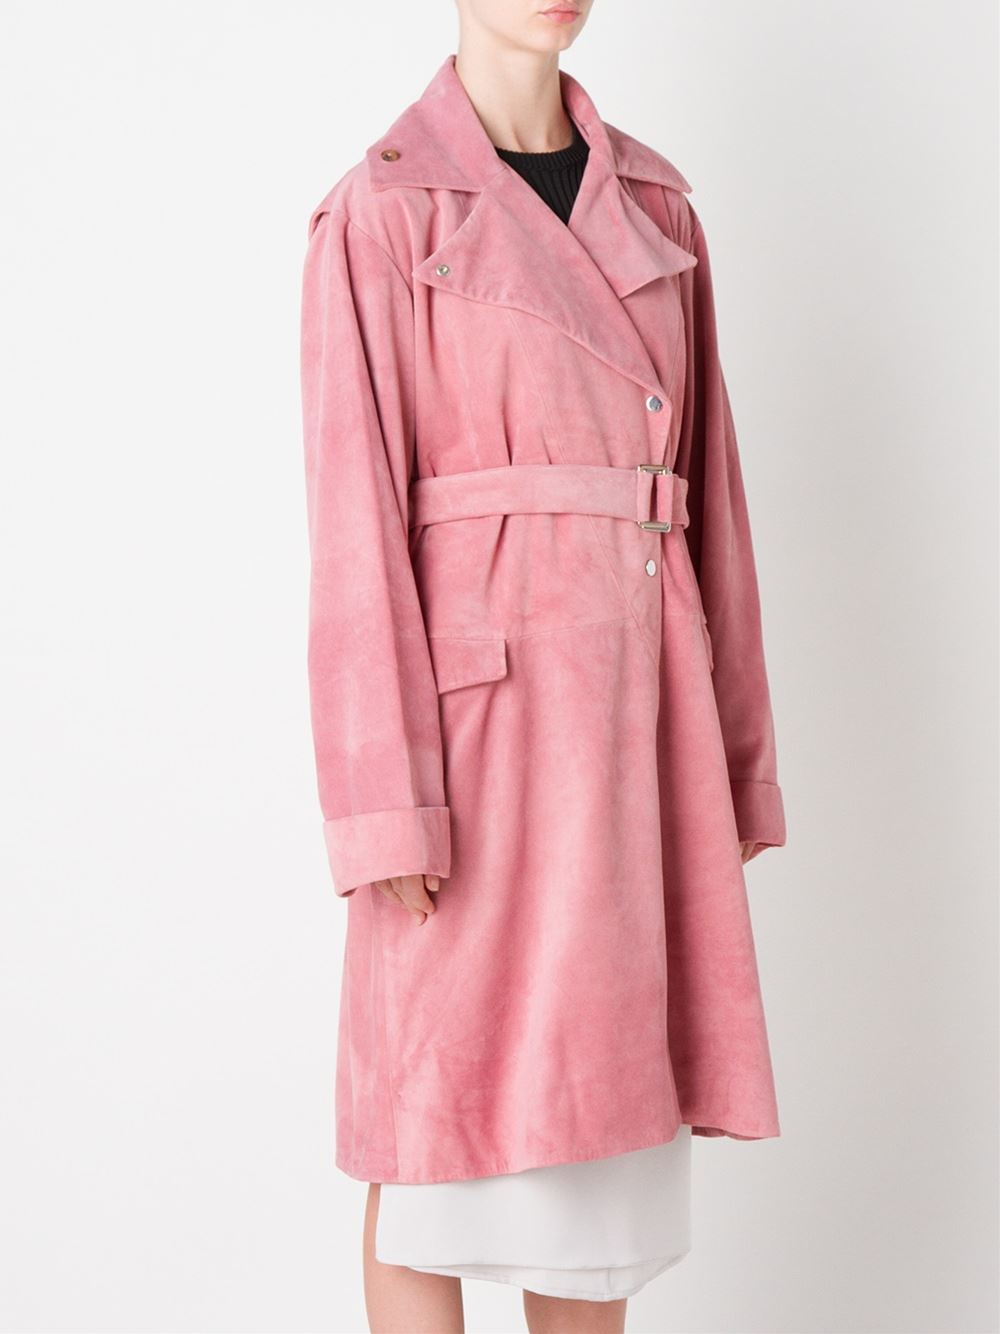 J.w.anderson Belted Trench Coat in Pink | Lyst